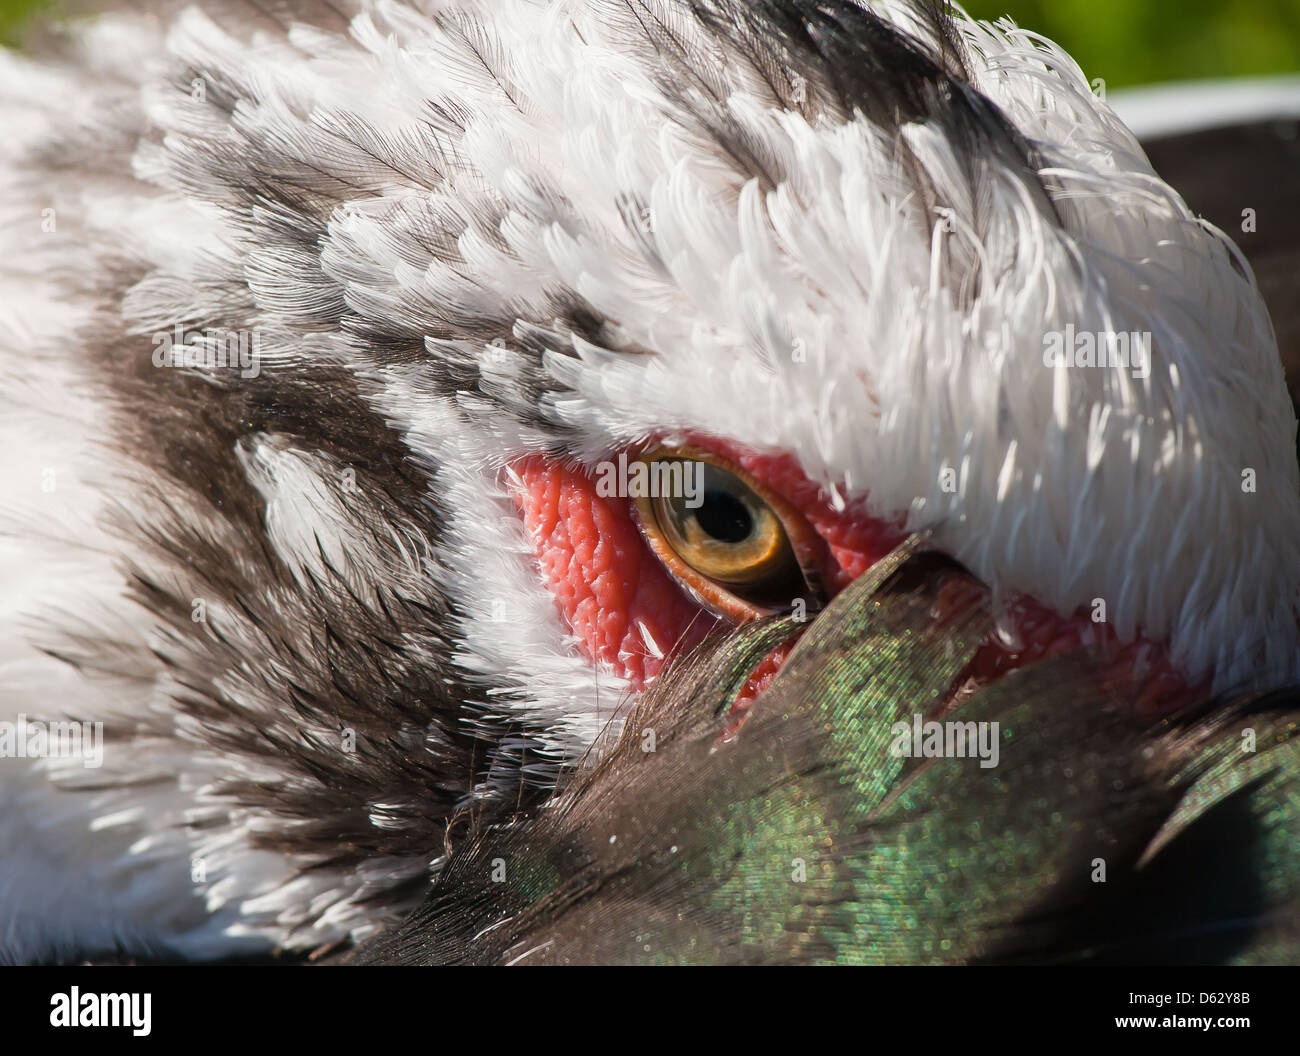 Distrustful look of a duck from under a wing - Stock Image